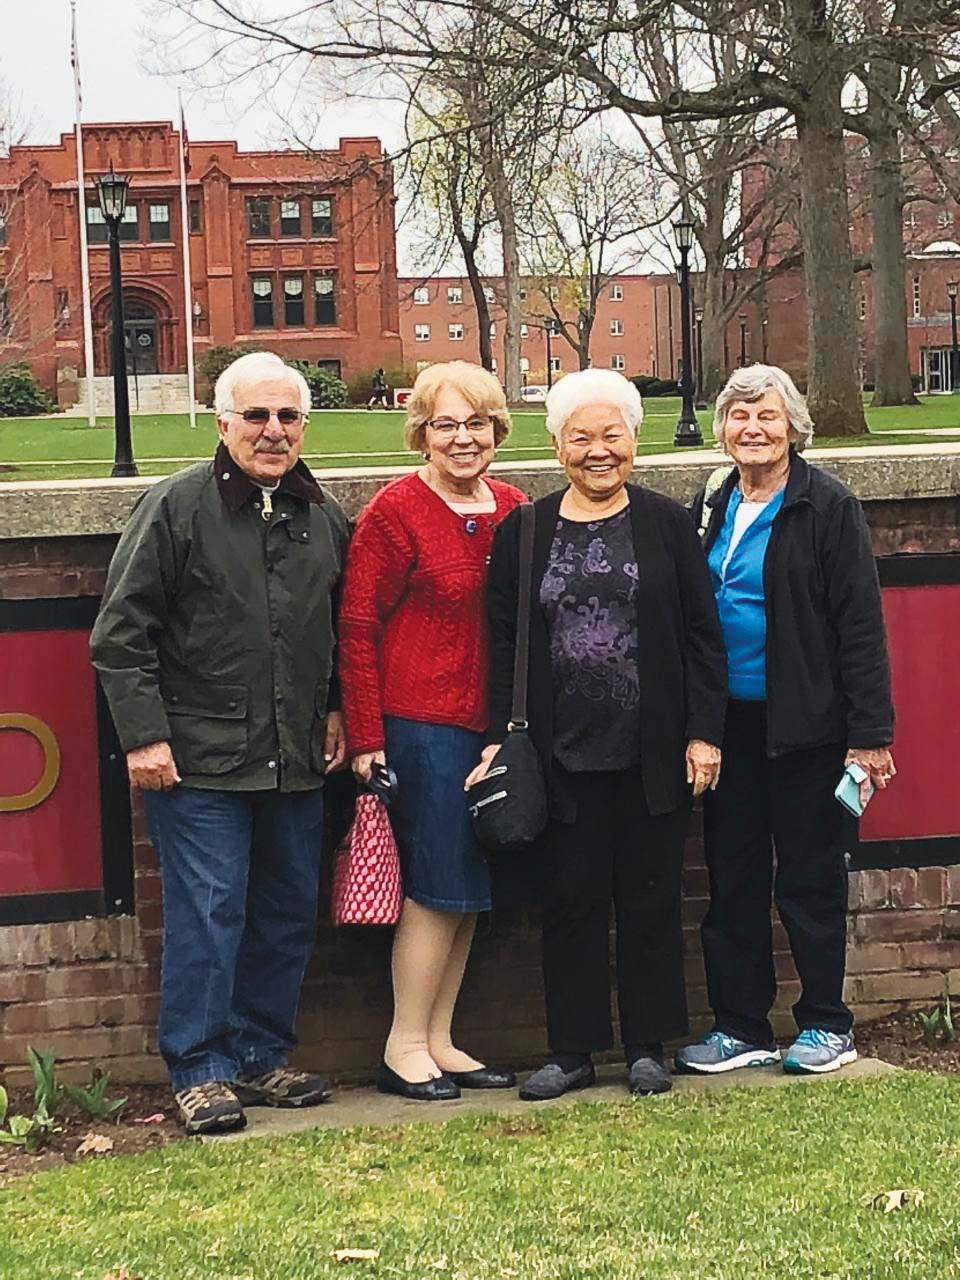 Jenny Ogata Yoshizumi '61, third from left, recently traveled from Hilo, Hawaii, to visit her former classmates in Granby, Conn. From left are George Galiatsos '61, G'65, Magda Galiatsos, Yoshizumi, and Susan Barstow Thomas '61.